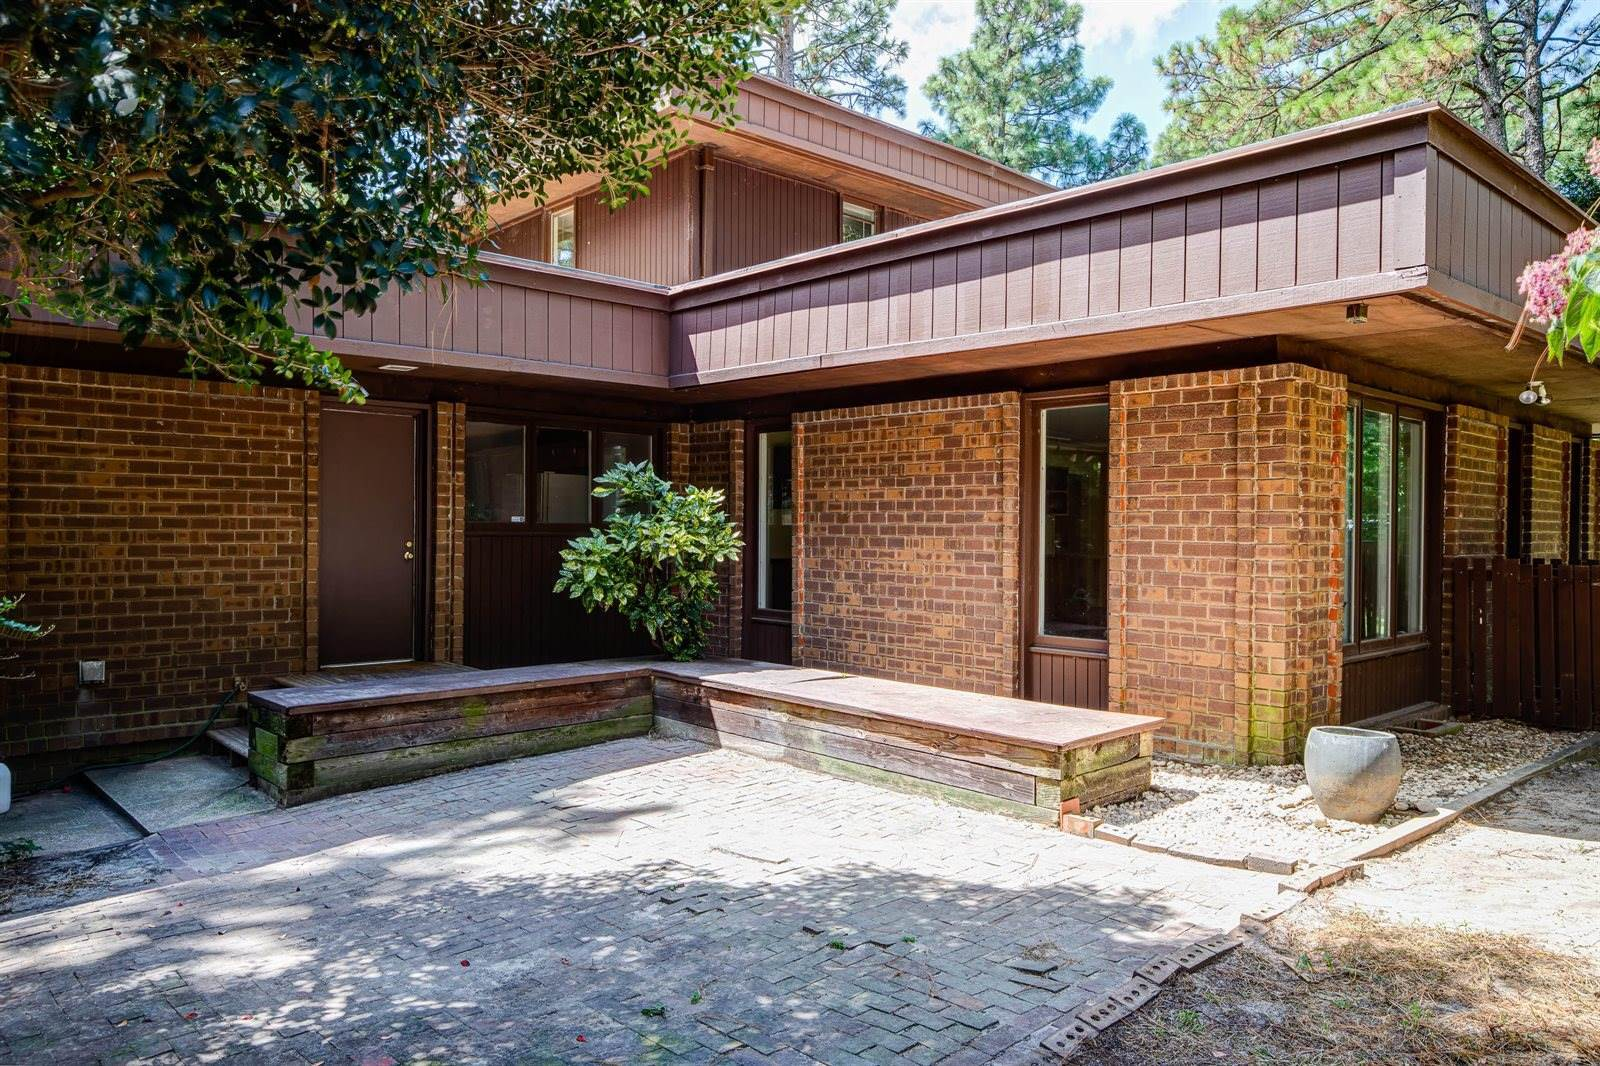 915 East Indiana Avenue, Southern Pines, NC 28387